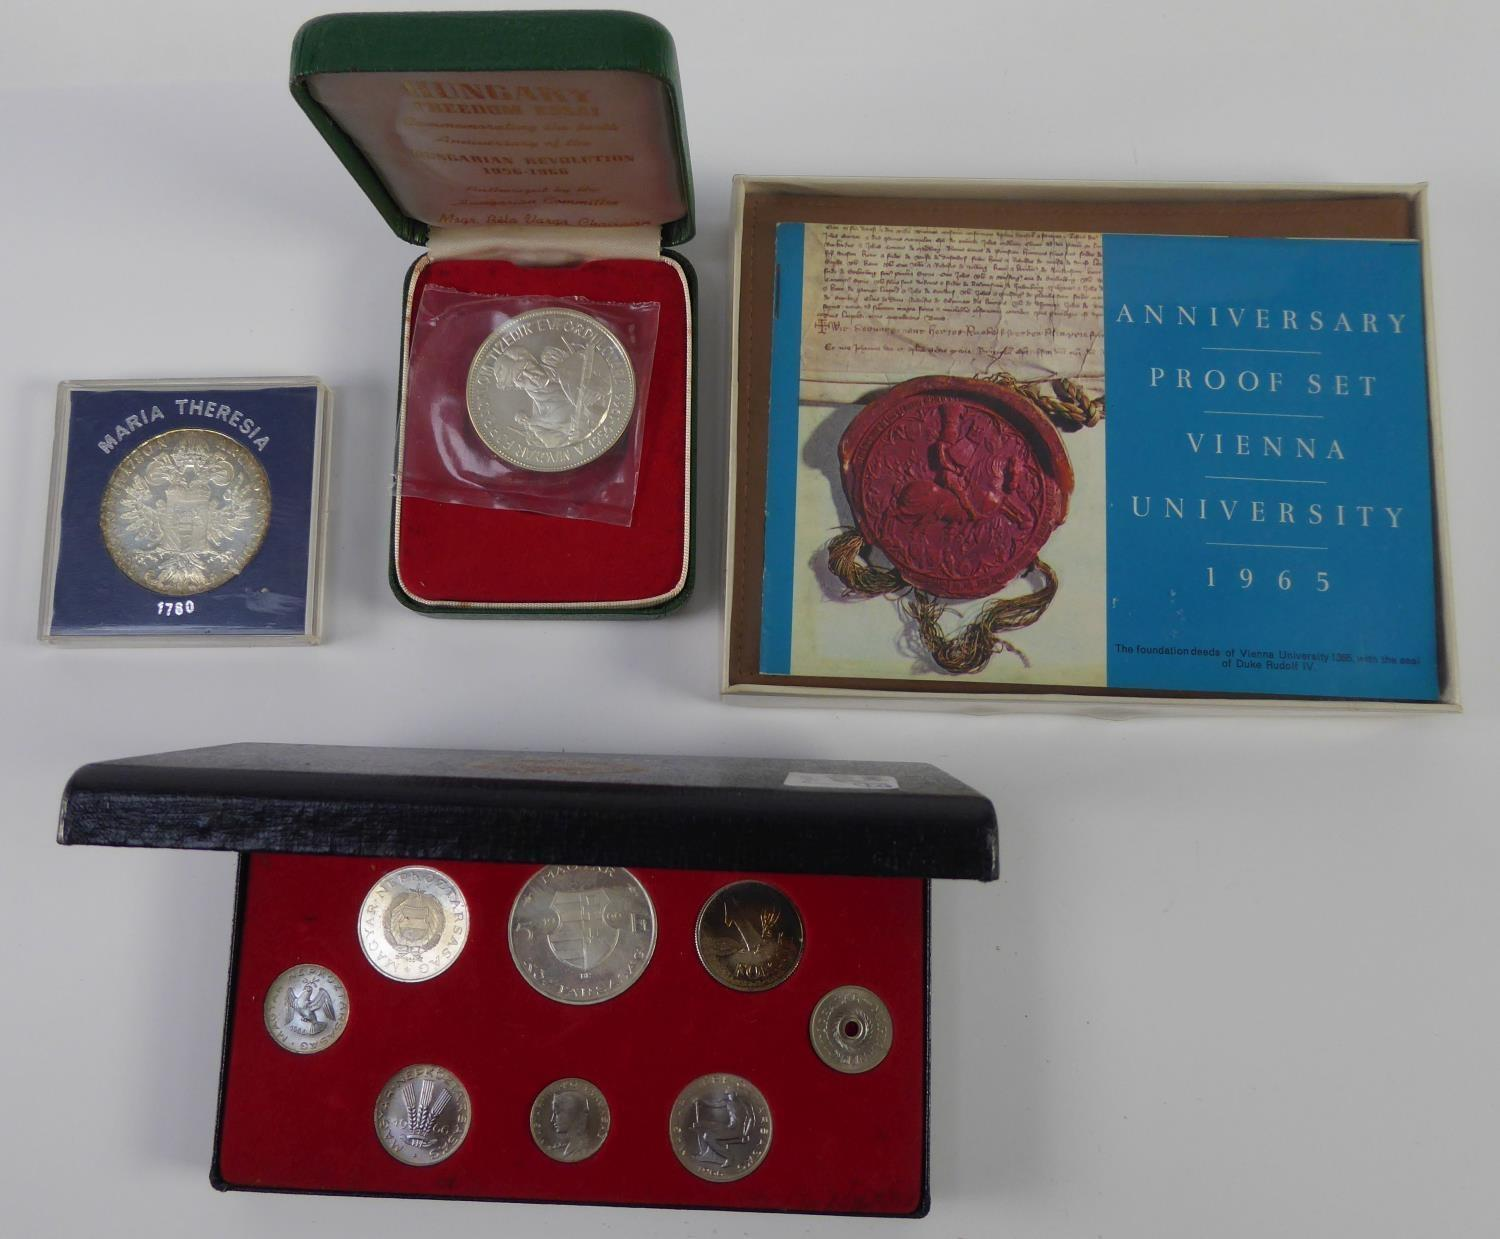 Lot 30 - ANNIVERSARY PROOF SETS OF AUSTRIAN SILVER COINS, 1965, FOR VIENNA UNIVERSITY, limited edition in